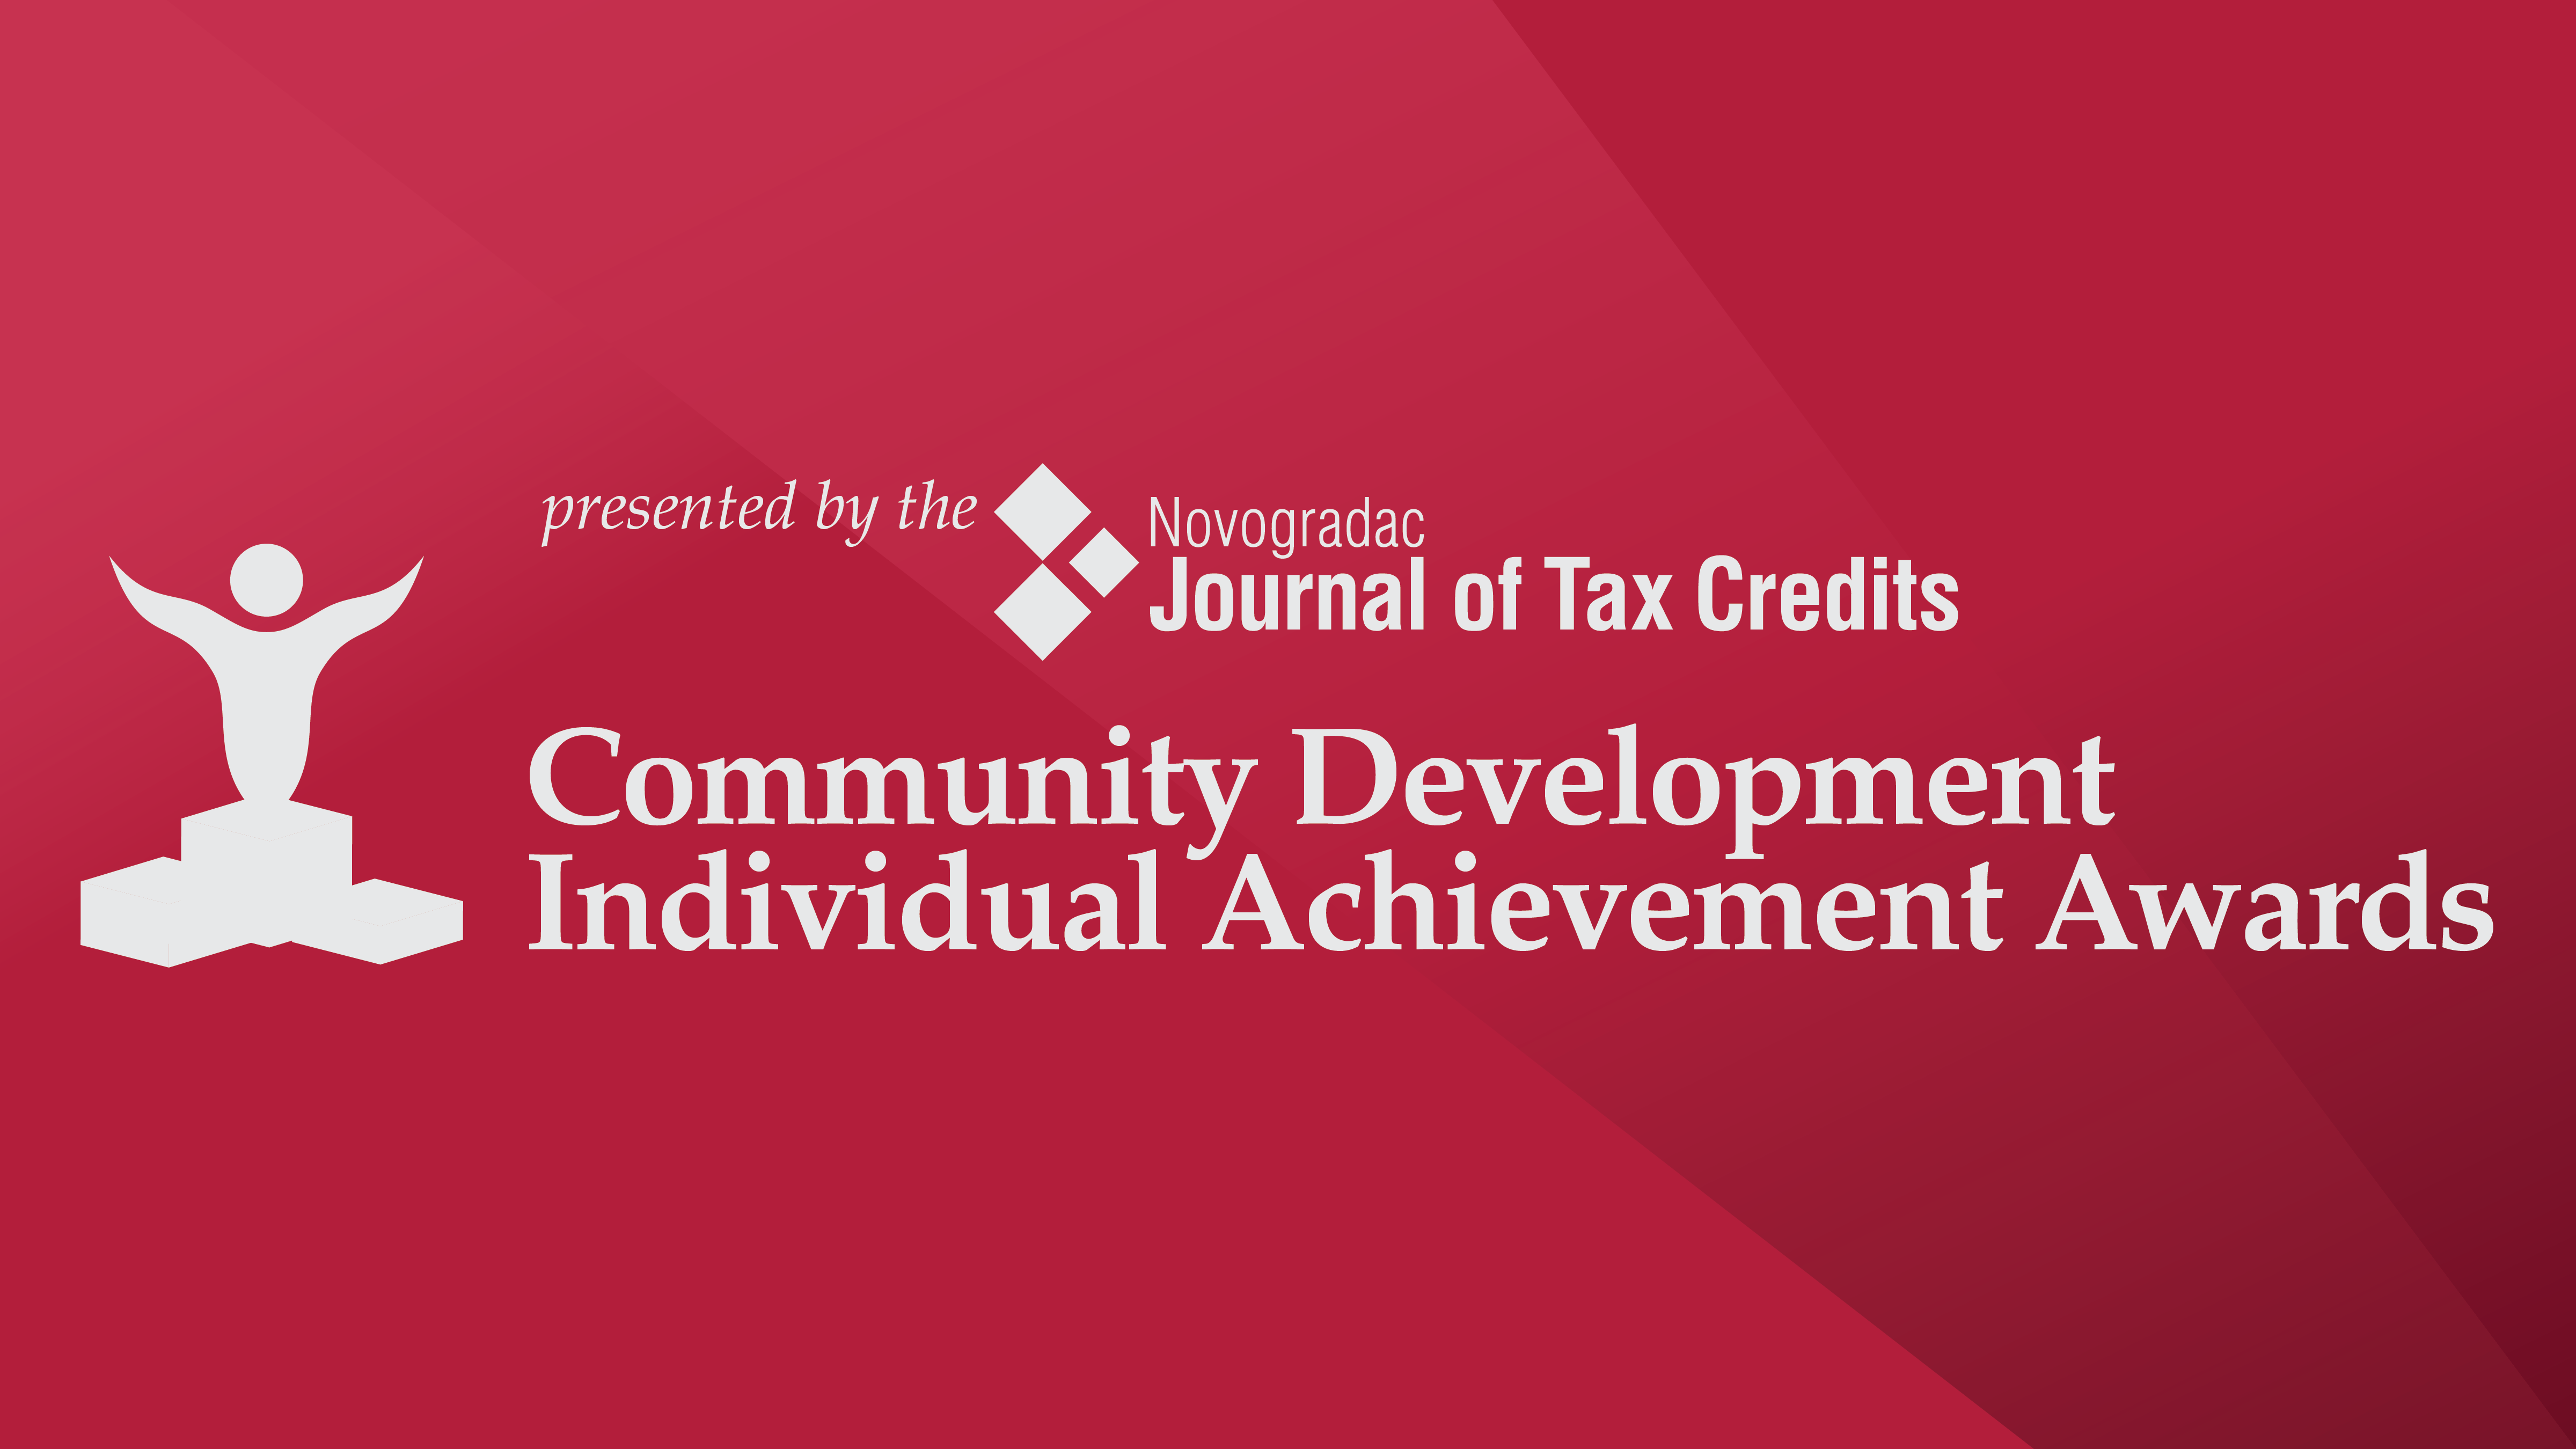 role of individual in community development